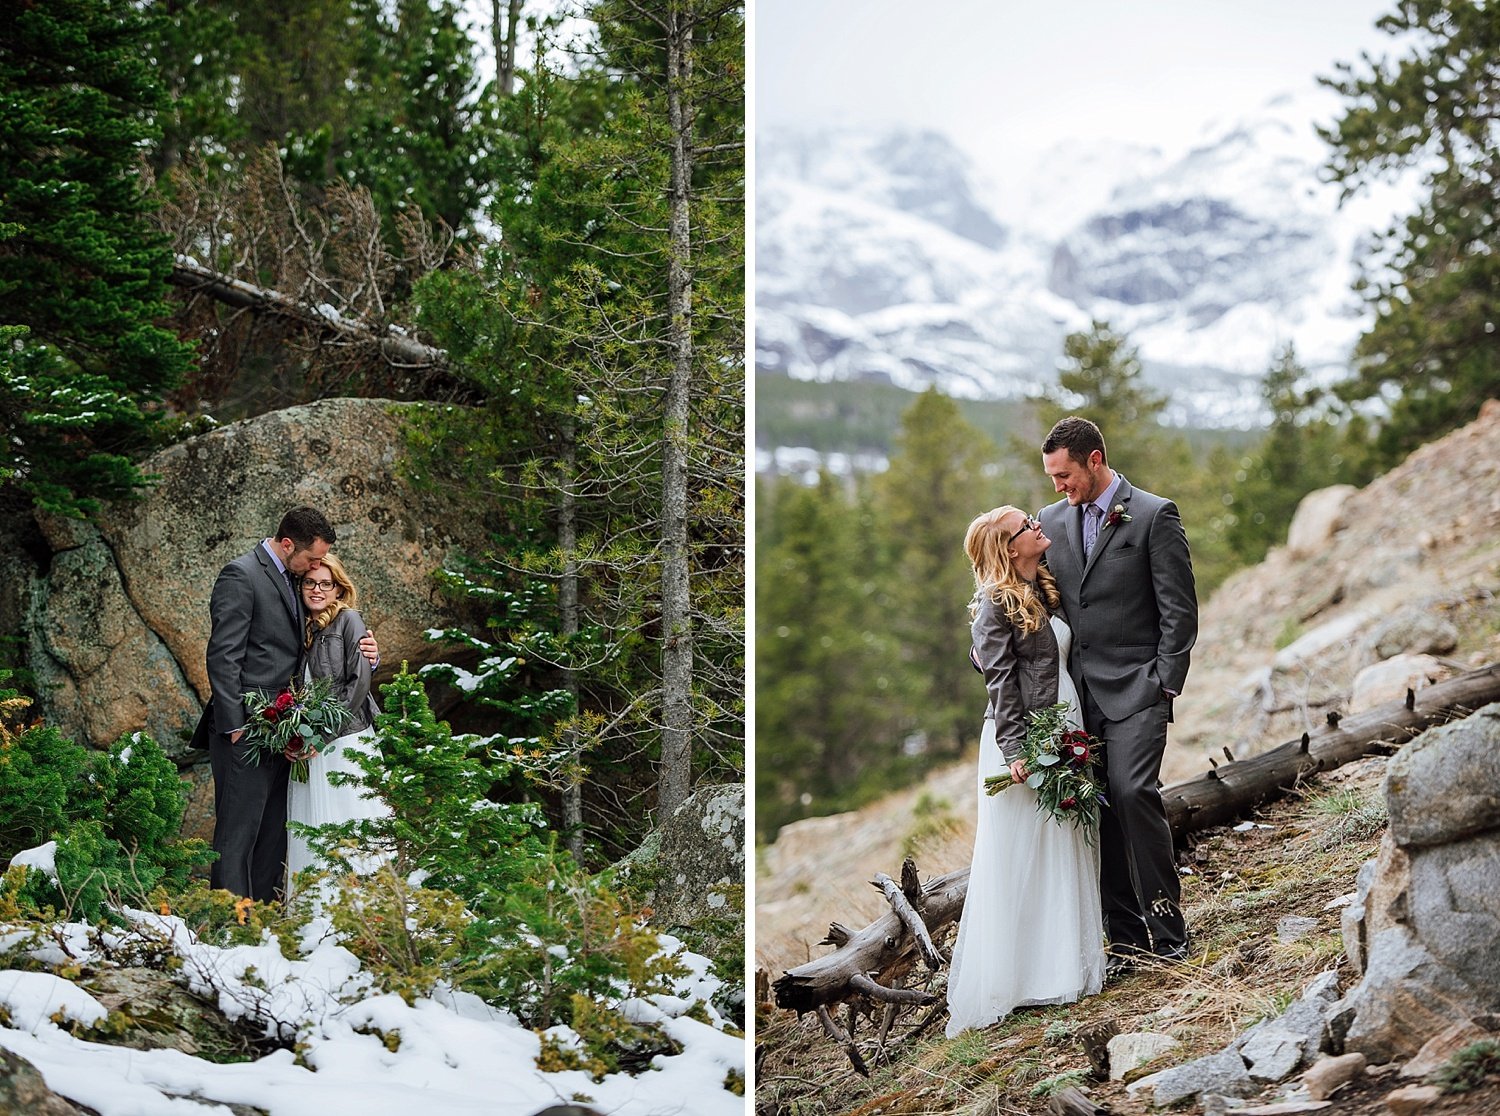 Winter weddings/ elopements are my favorite! There is something so comforting about winter time and being surrounded by the mountains - Rocky Mountain National Park is an amazing place, especially for a wedding! Photo by Maddie Mae Photography